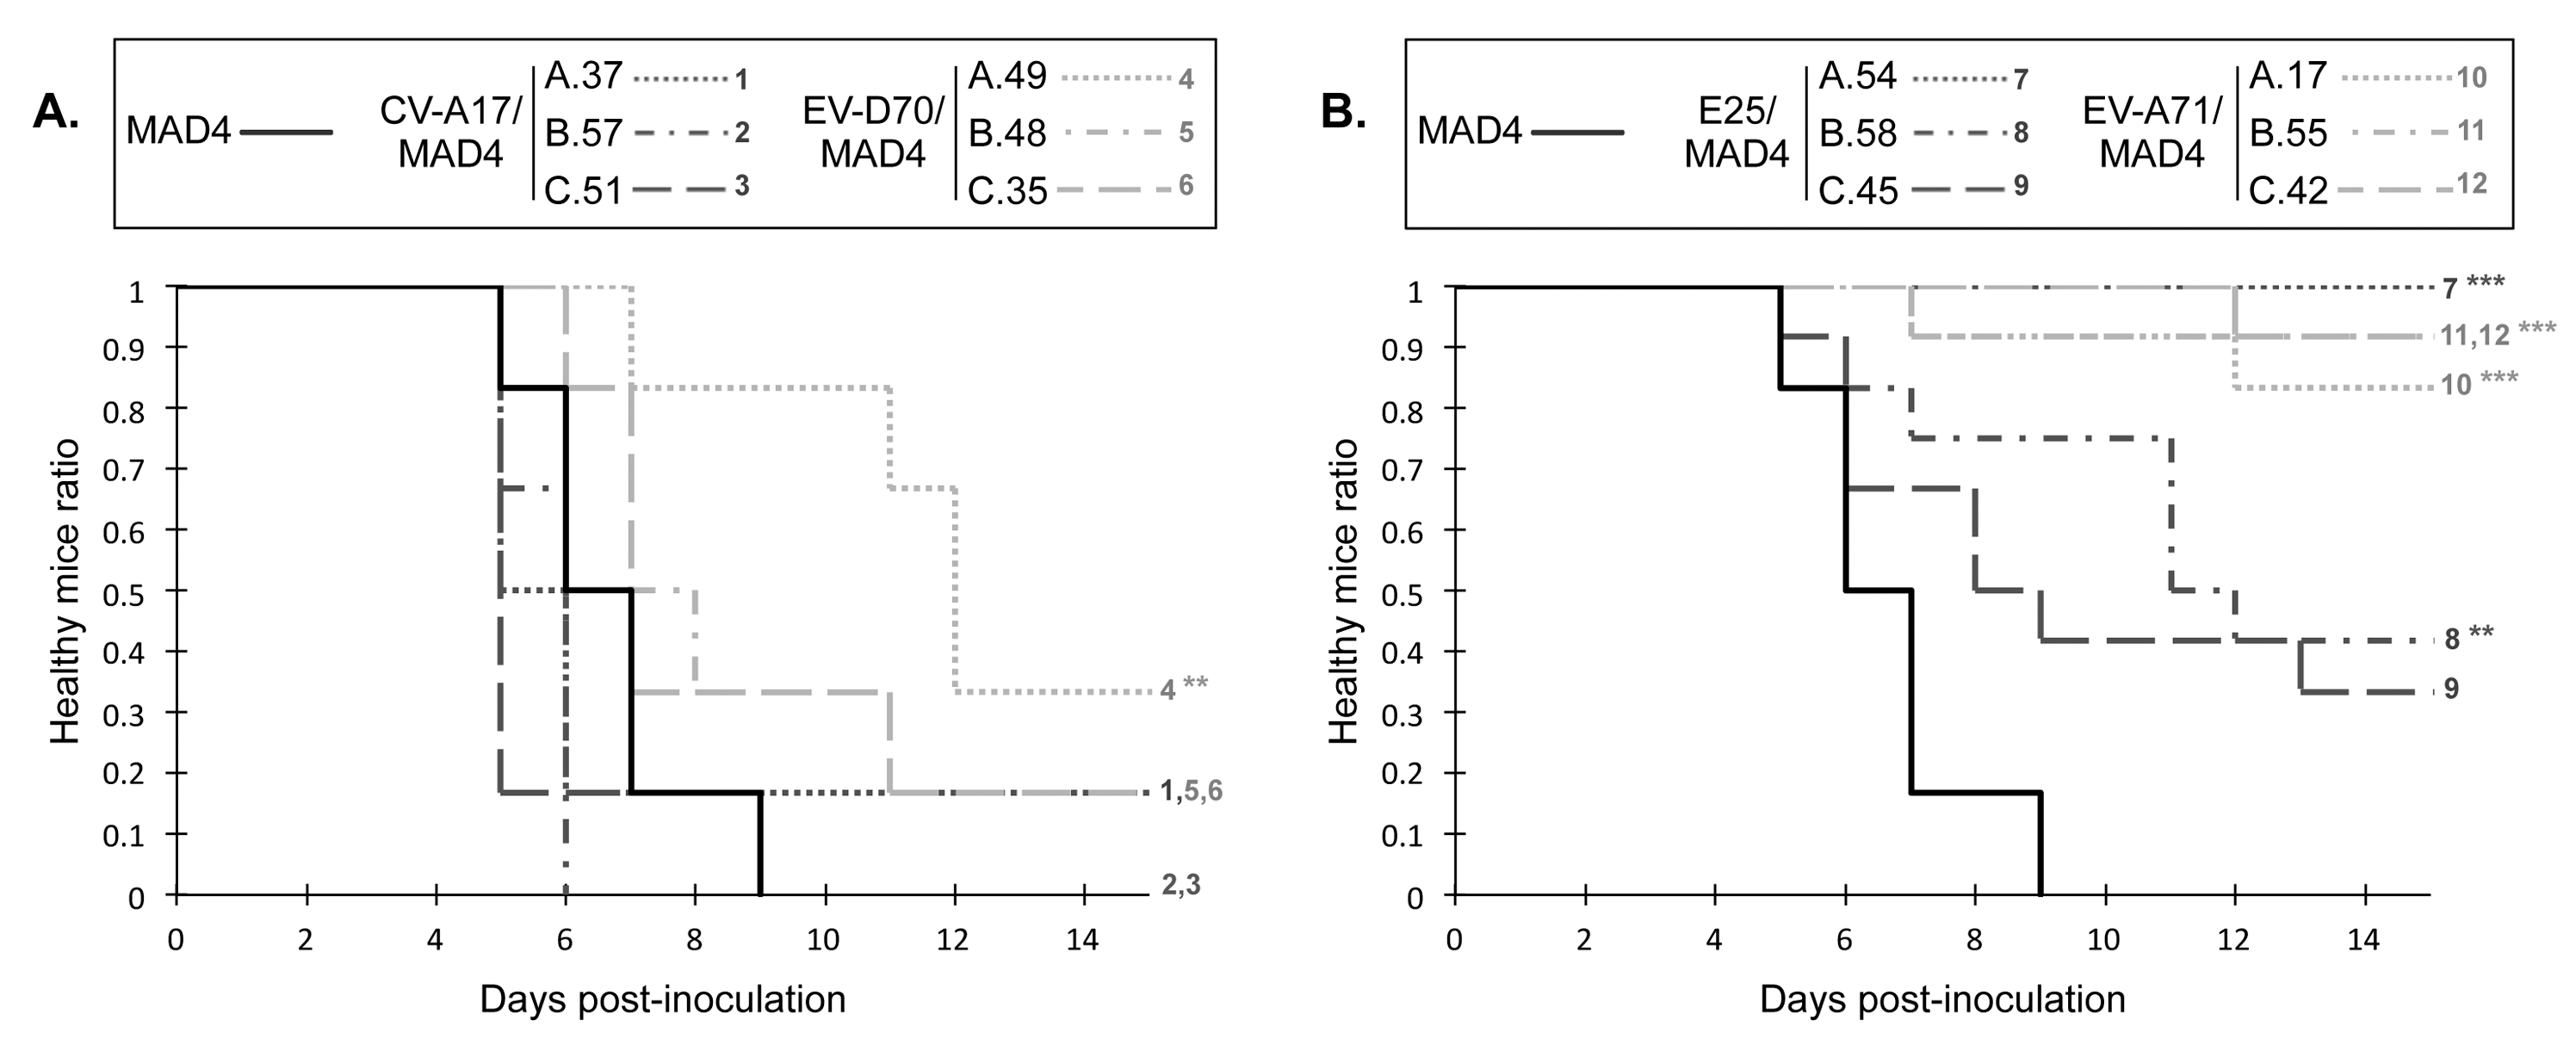 Neurovirulence of MAD4 and selected recombinant viruses in PVR-Tg mice.